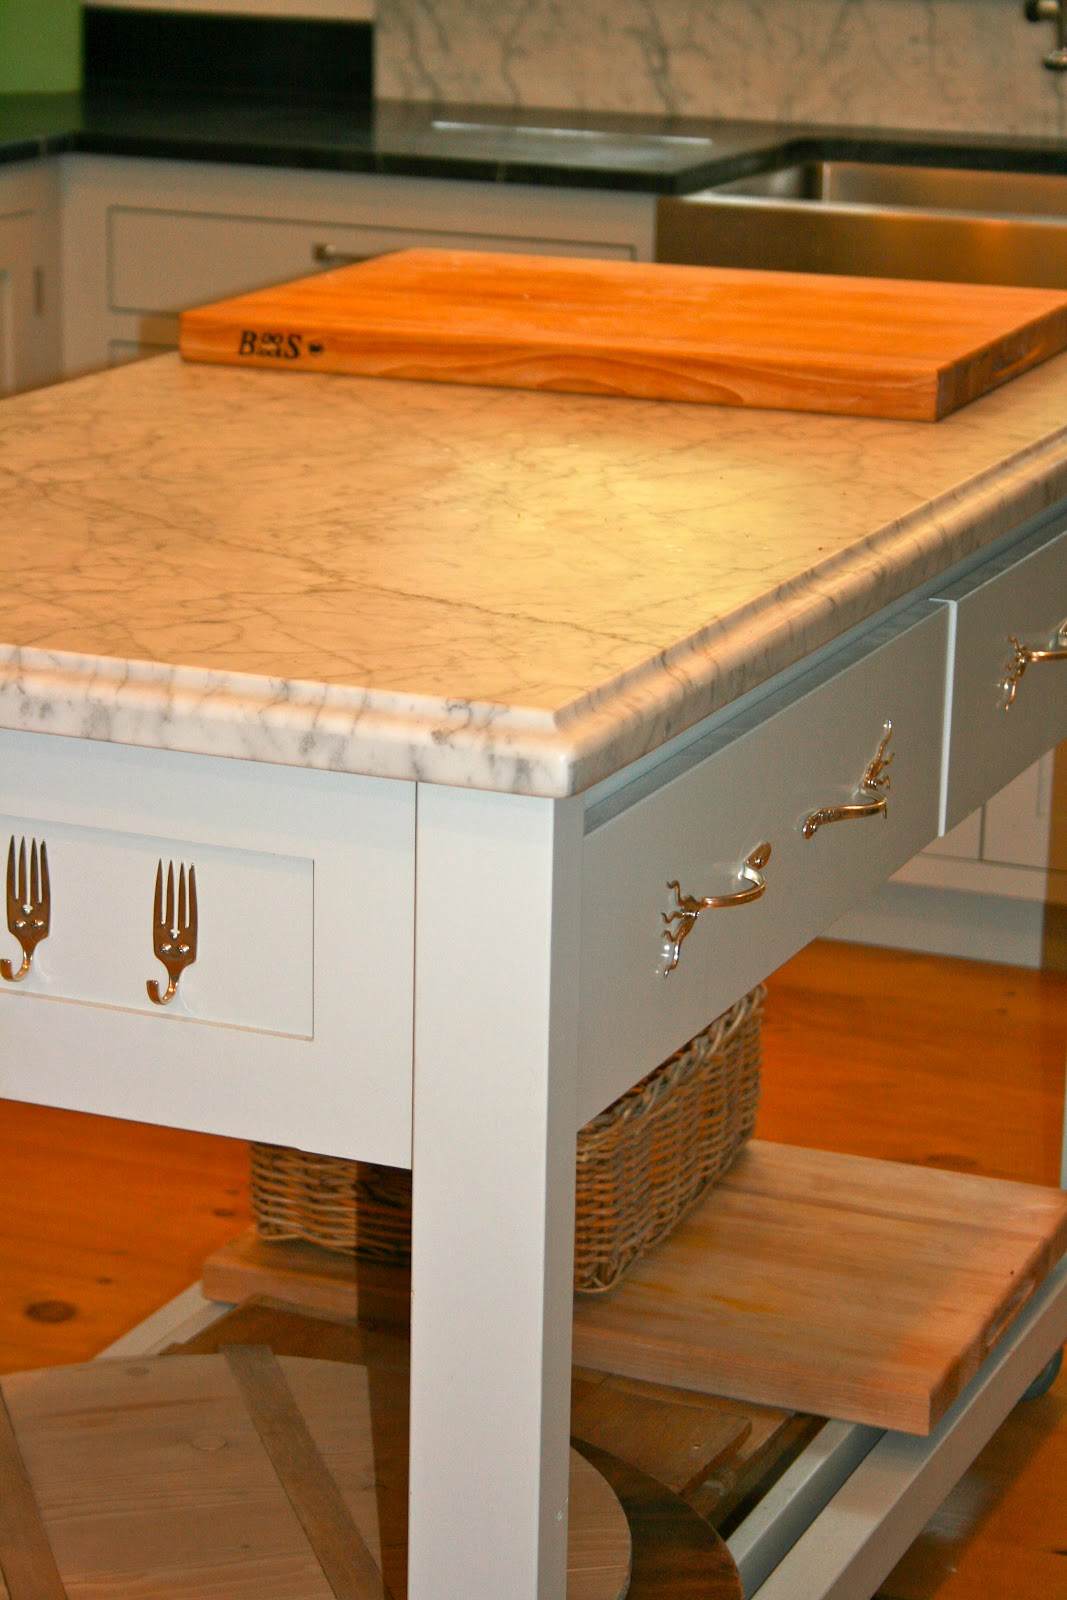 The Polished Pebble Movable Kitchen Islands